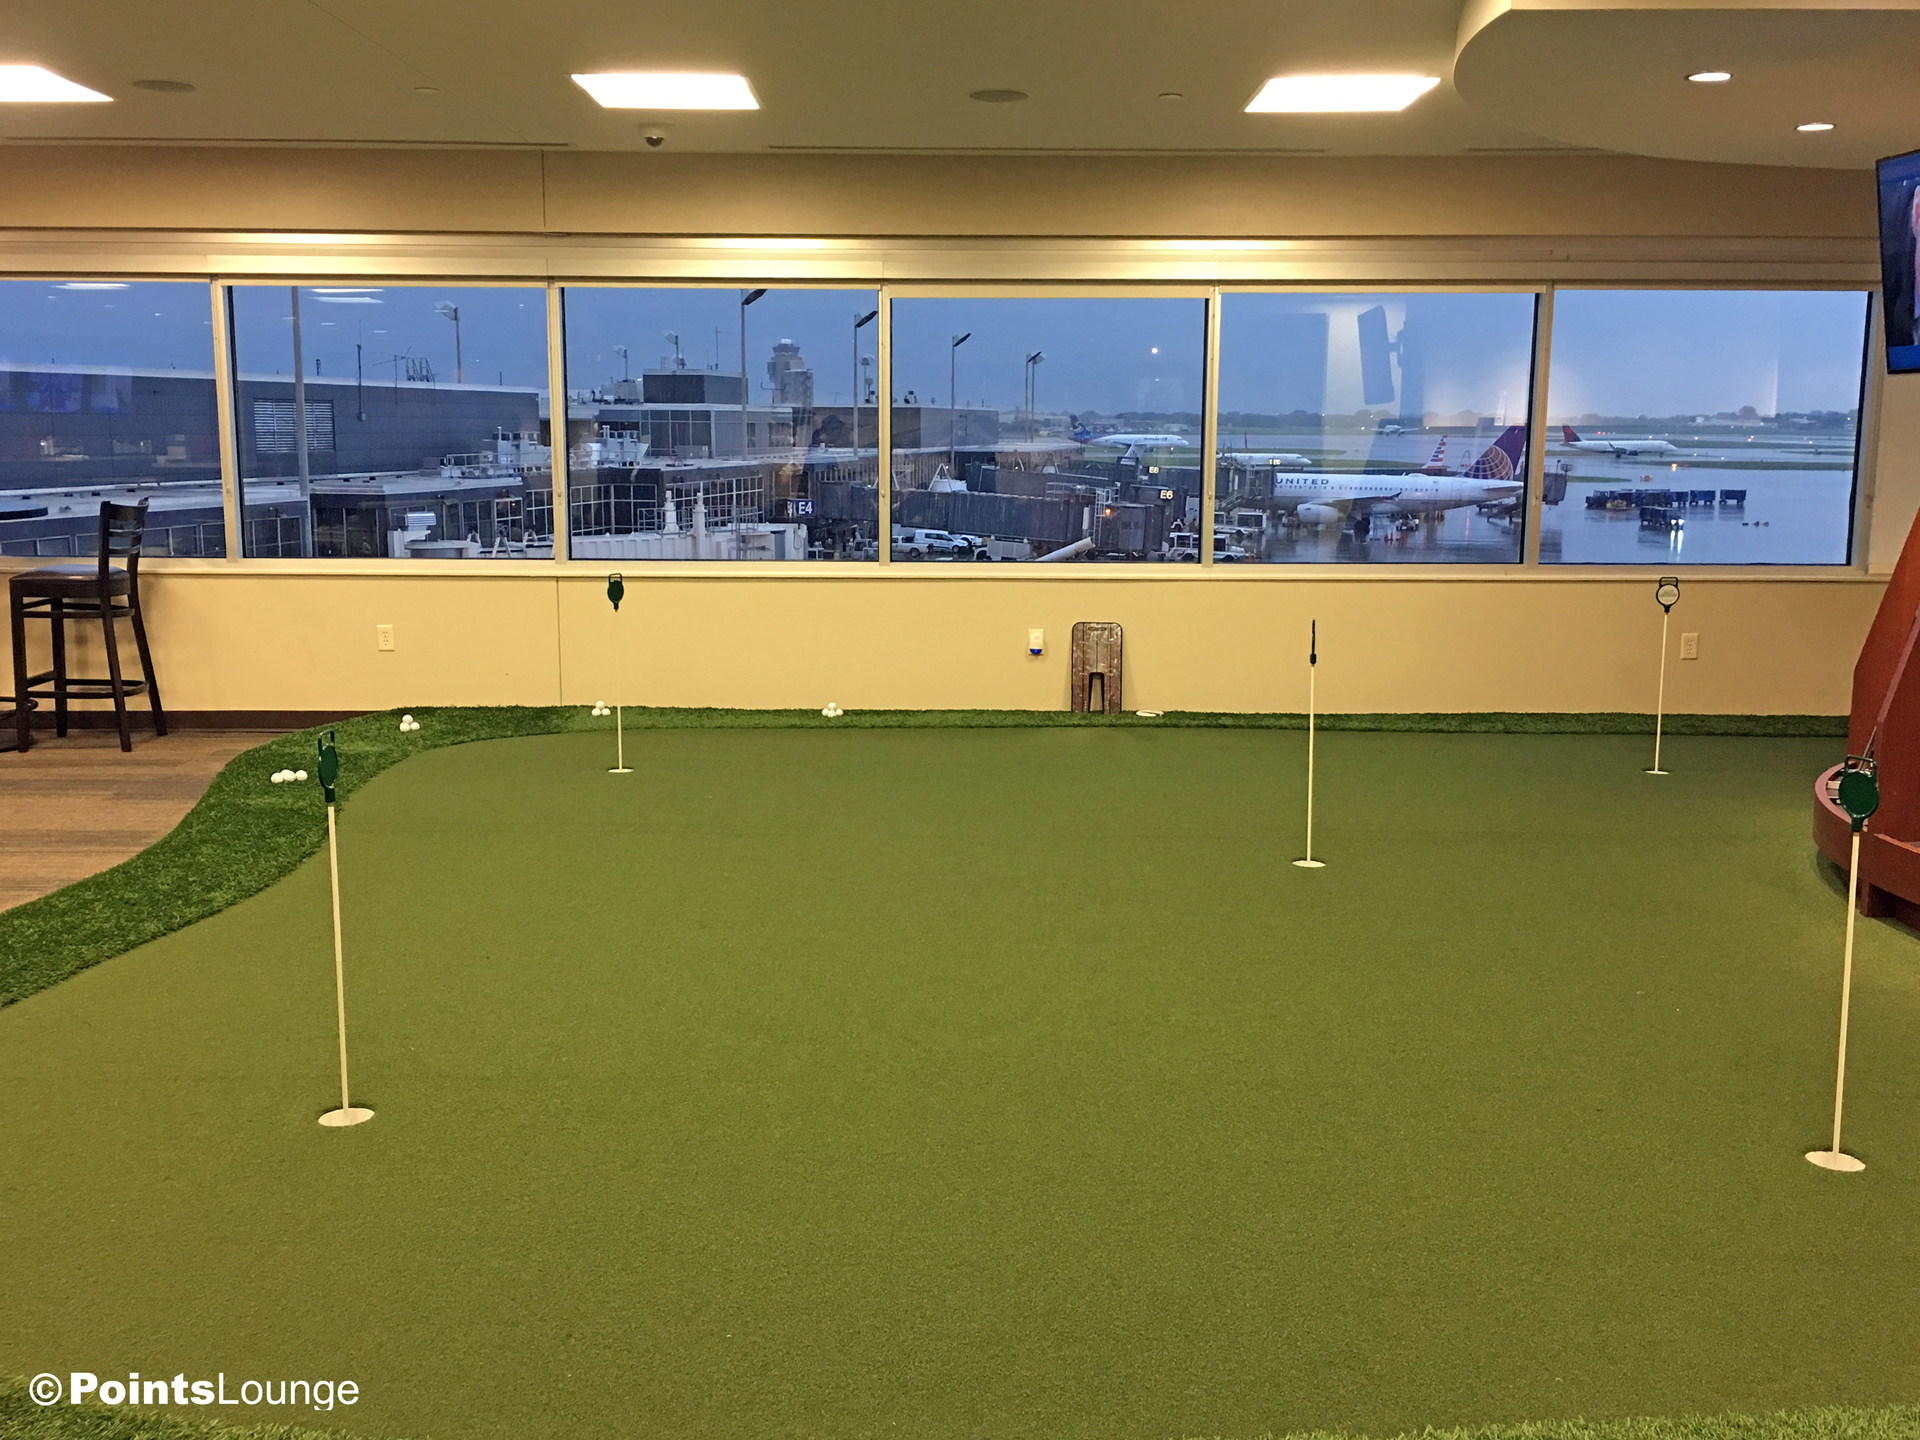 A view of the E concourse at MSP airport and a putting green as seen from inside the PGA MSP golf-themed airport lounge at the Minneapolis-St. Paul International Airport. One of the ways the lounge can be accessed is with Priority Pass membership. (Click for a larger image.)